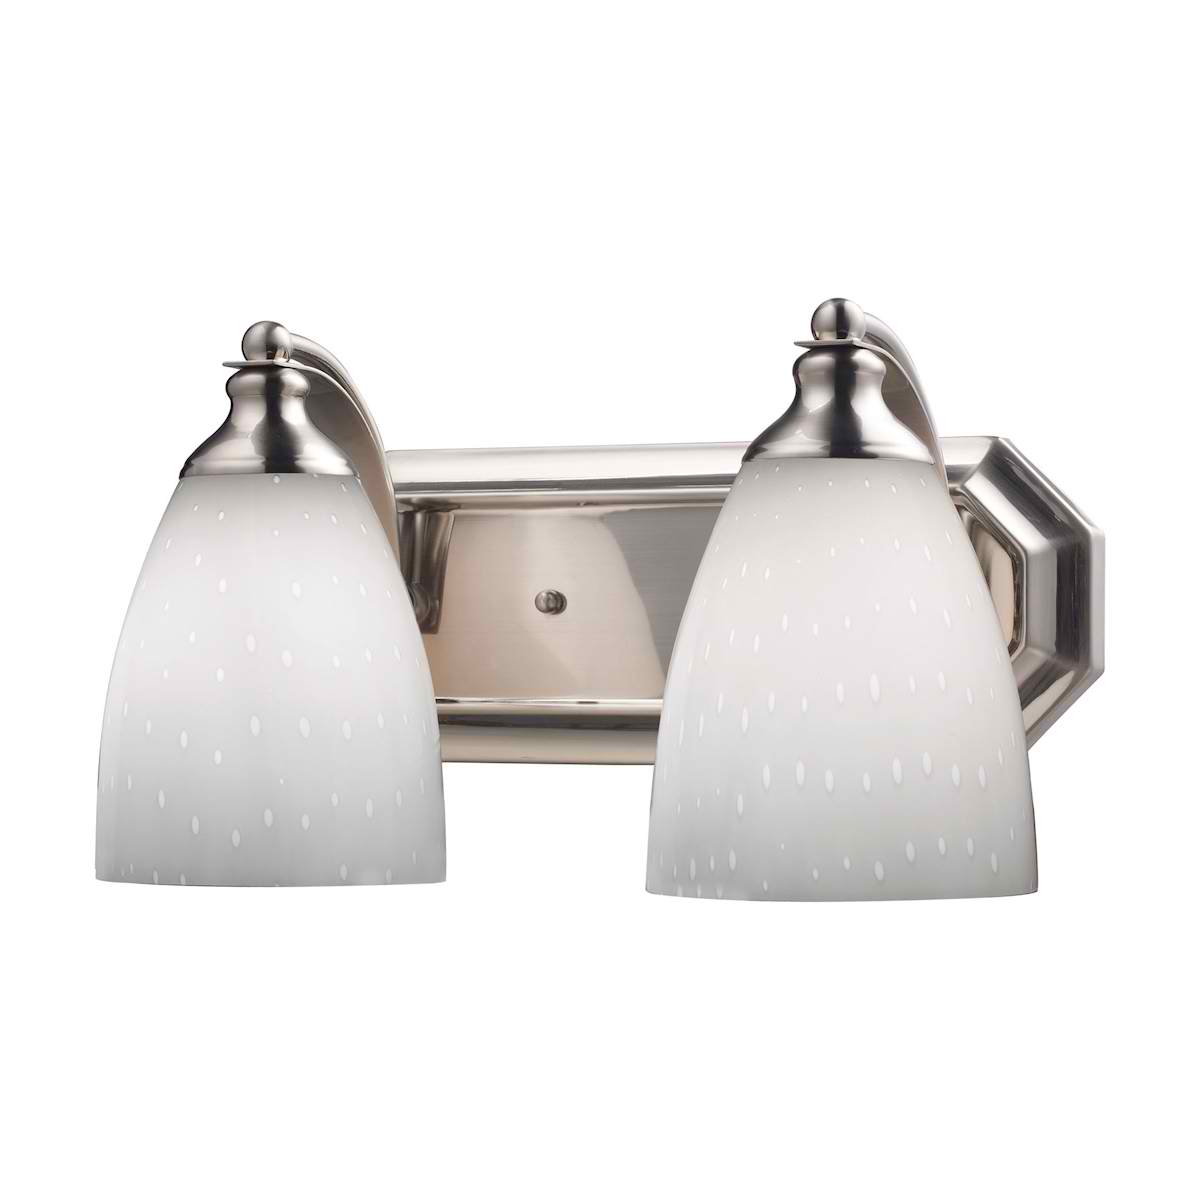 Vanity 2 Light Satin Nickel with Simple White Glass